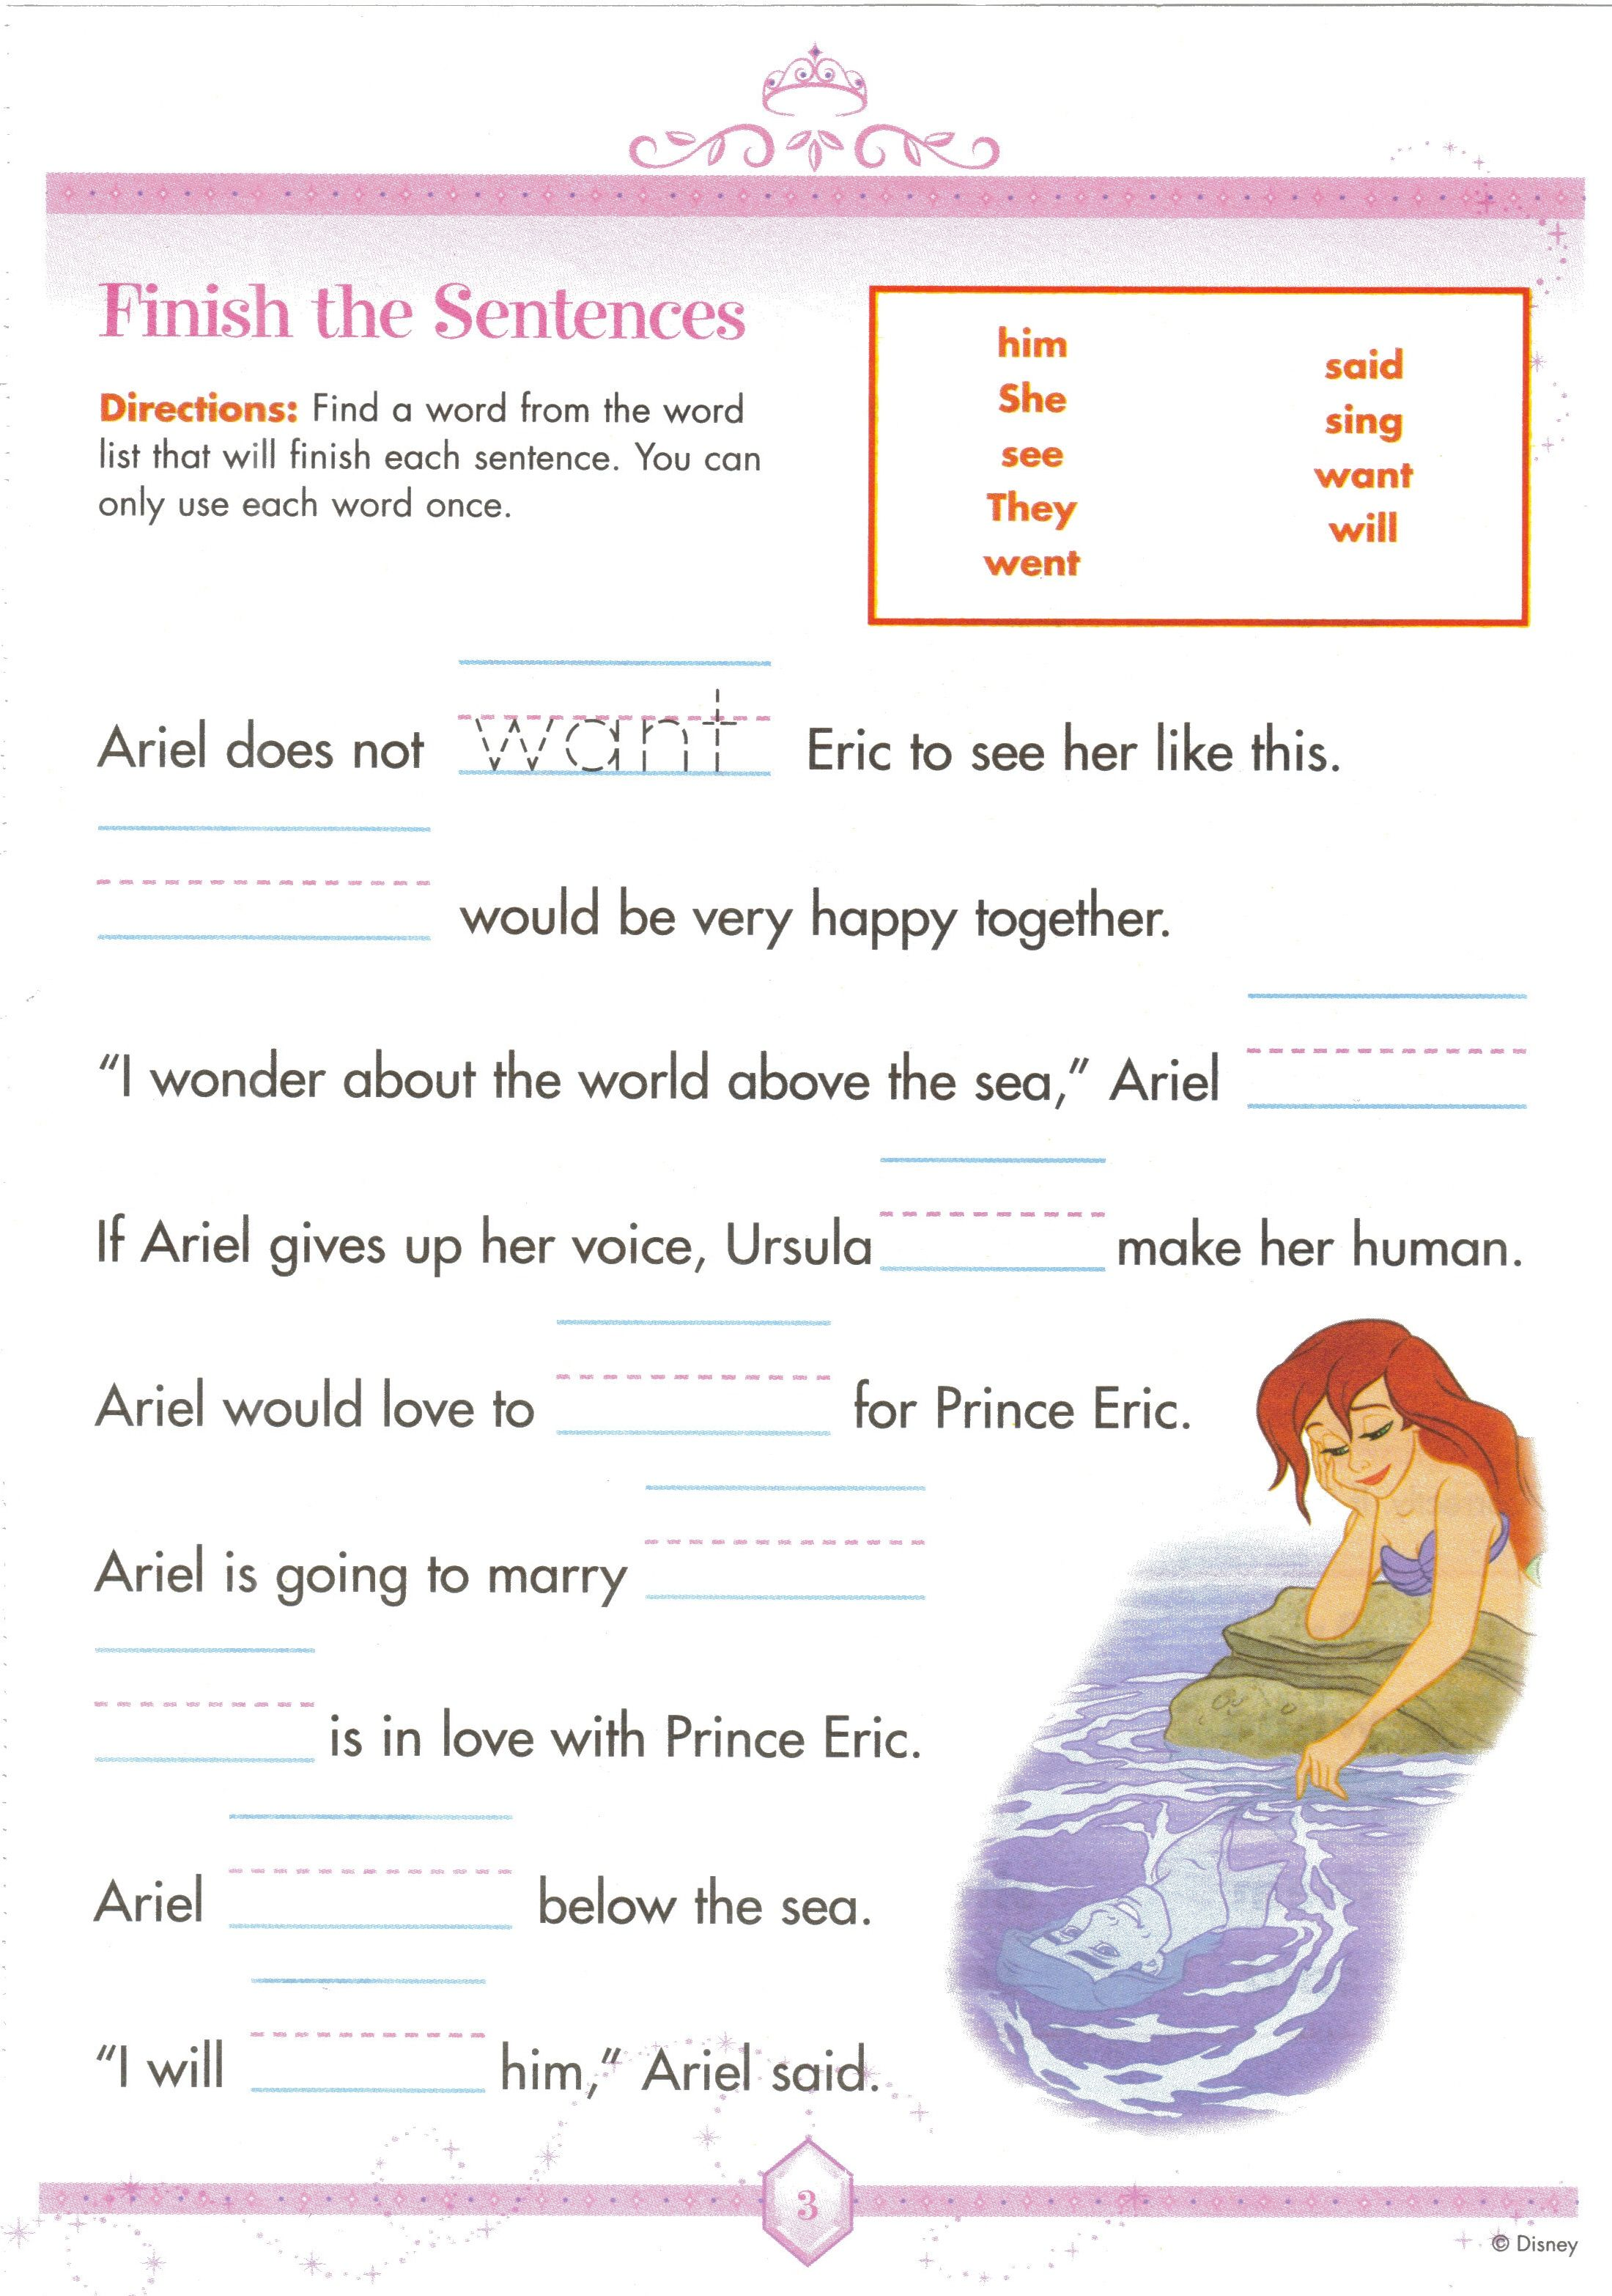 Weirdmailus  Nice  Images About Worksheets On Pinterest  Fun Facts For Kids  With Fascinating  Images About Worksheets On Pinterest  Fun Facts For Kids Earth Day Worksheets And Jungles With Nice Esl Teacher Handouts Grammar Worksheets And Printables Also Sequencing Worksheet Nd Grade In Addition Pre Kindergarten Worksheets Printables And Pearson Success Net Worksheets As Well As Maths Multiplication Worksheets For Class  Additionally Finding Gcf Worksheets From Pinterestcom With Weirdmailus  Fascinating  Images About Worksheets On Pinterest  Fun Facts For Kids  With Nice  Images About Worksheets On Pinterest  Fun Facts For Kids Earth Day Worksheets And Jungles And Nice Esl Teacher Handouts Grammar Worksheets And Printables Also Sequencing Worksheet Nd Grade In Addition Pre Kindergarten Worksheets Printables From Pinterestcom